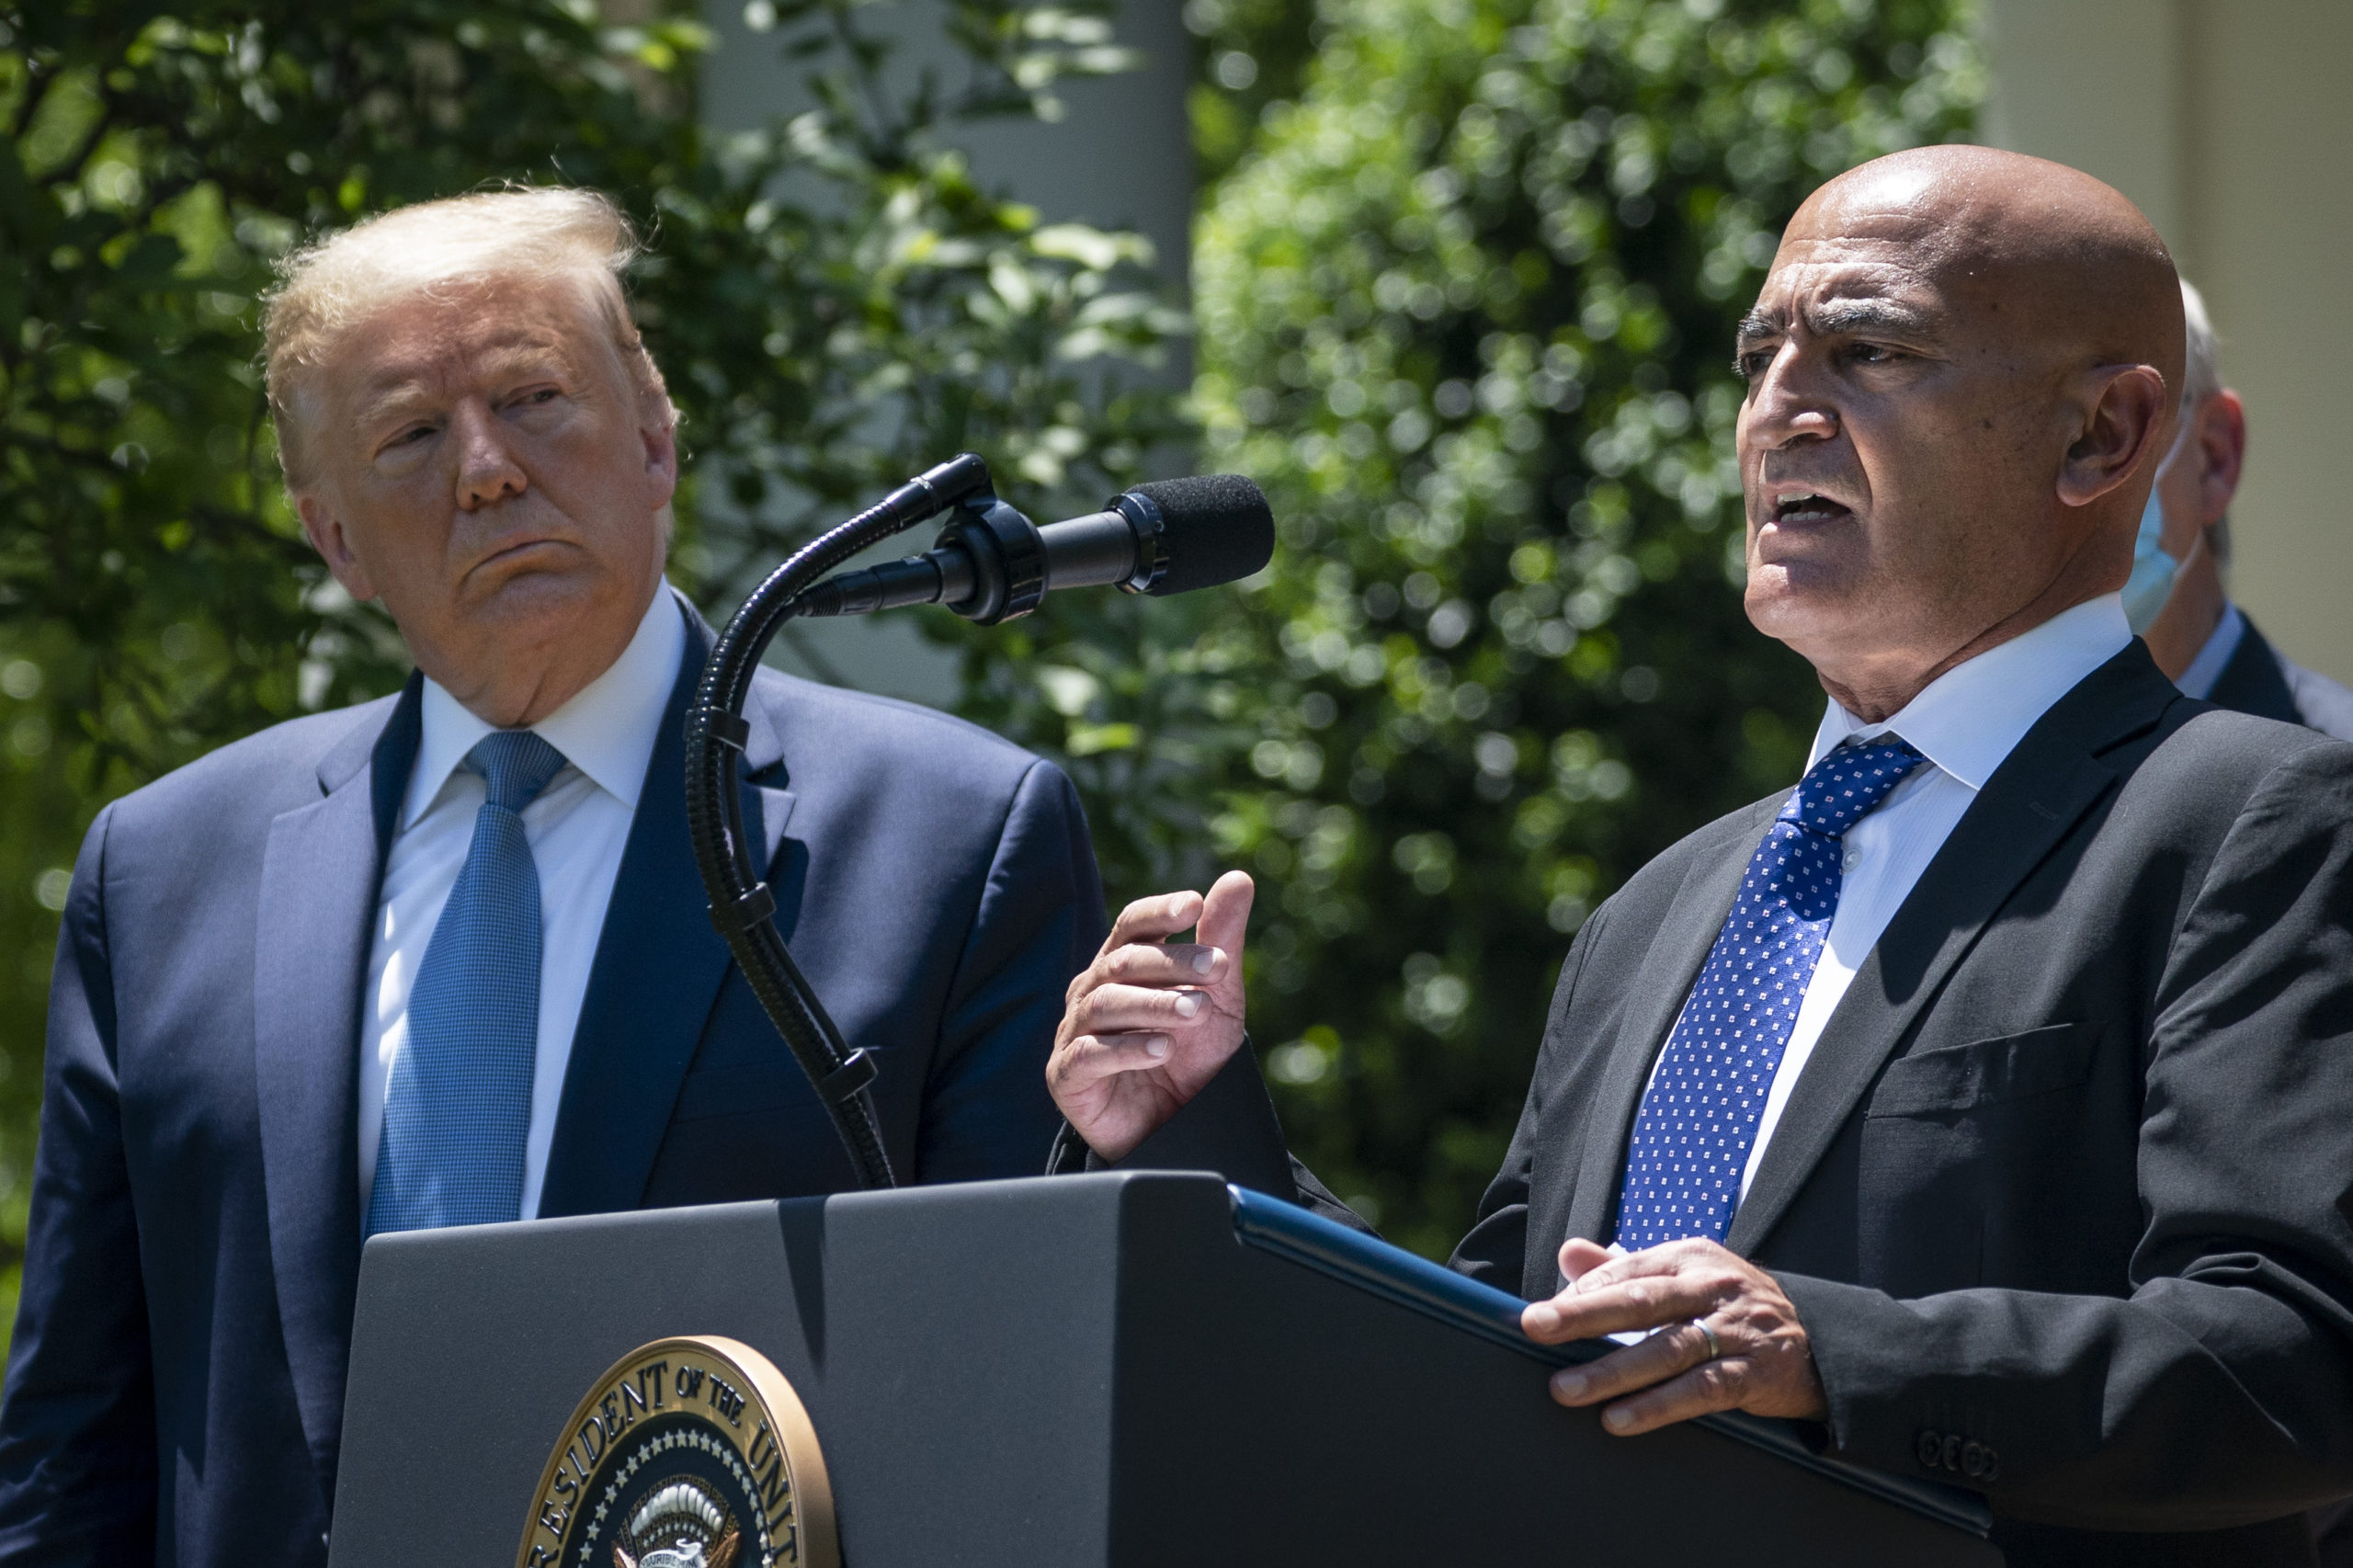 "WASHINGTON, DC - MAY 15: (L-R) U.S. President Donald Trump listens as Moncef Slaoui, the former head of GlaxoSmithKlines vaccines division, speaks about coronavirus vaccine development in the Rose Garden of the White House on May 15, 2020 in Washington, DC. Dubbed ""Operation Warp Speed,"" the Trump administration is announcing plans for an all-out effort to produce and distribute a coronavirus vaccine by the end of 2020. (Photo by Drew Angerer/Getty Images)"